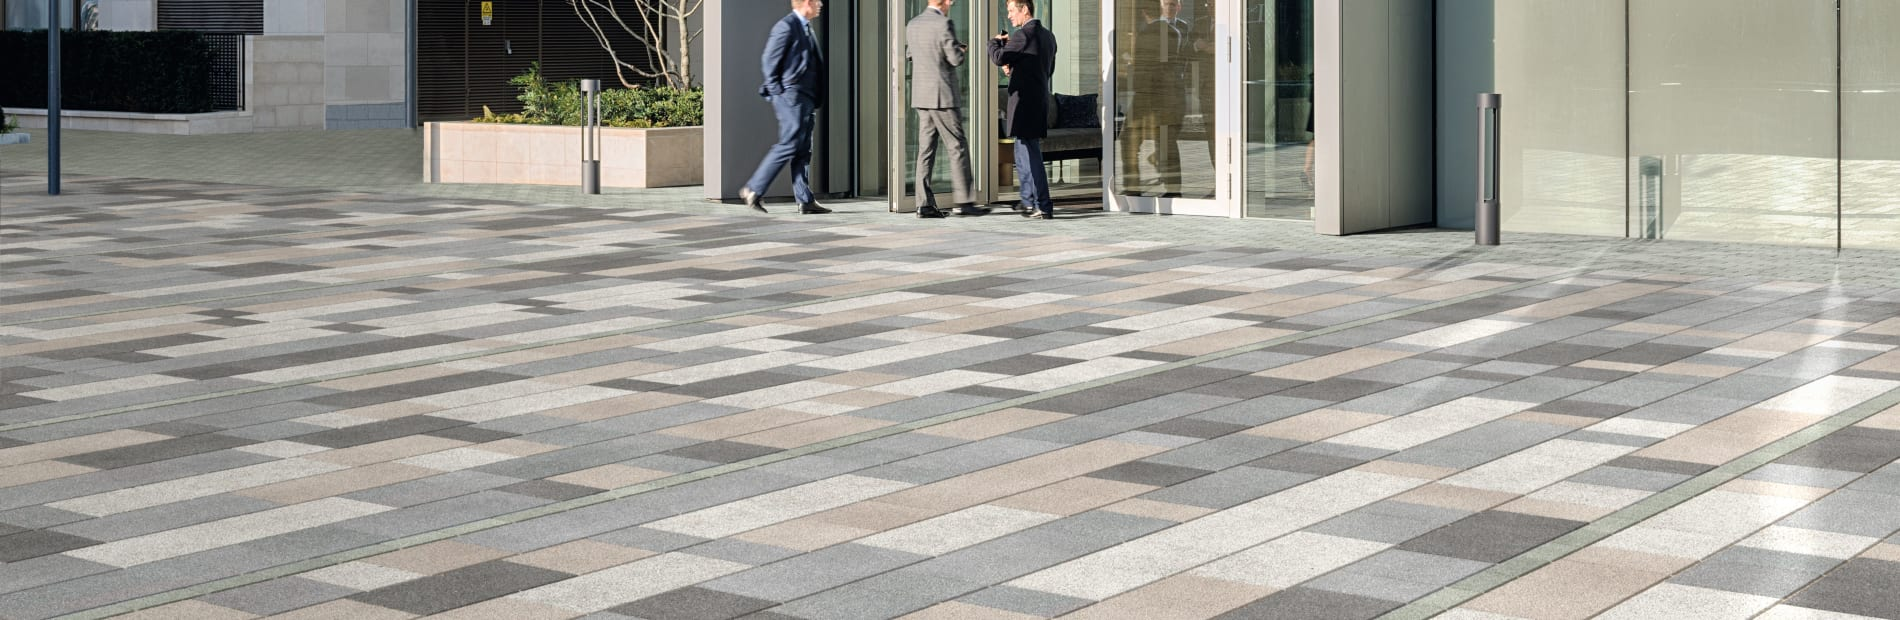 Commercial Paving Slabs Industrial Paving Flagstones Concrete Paving Materials Supplier Marshalls